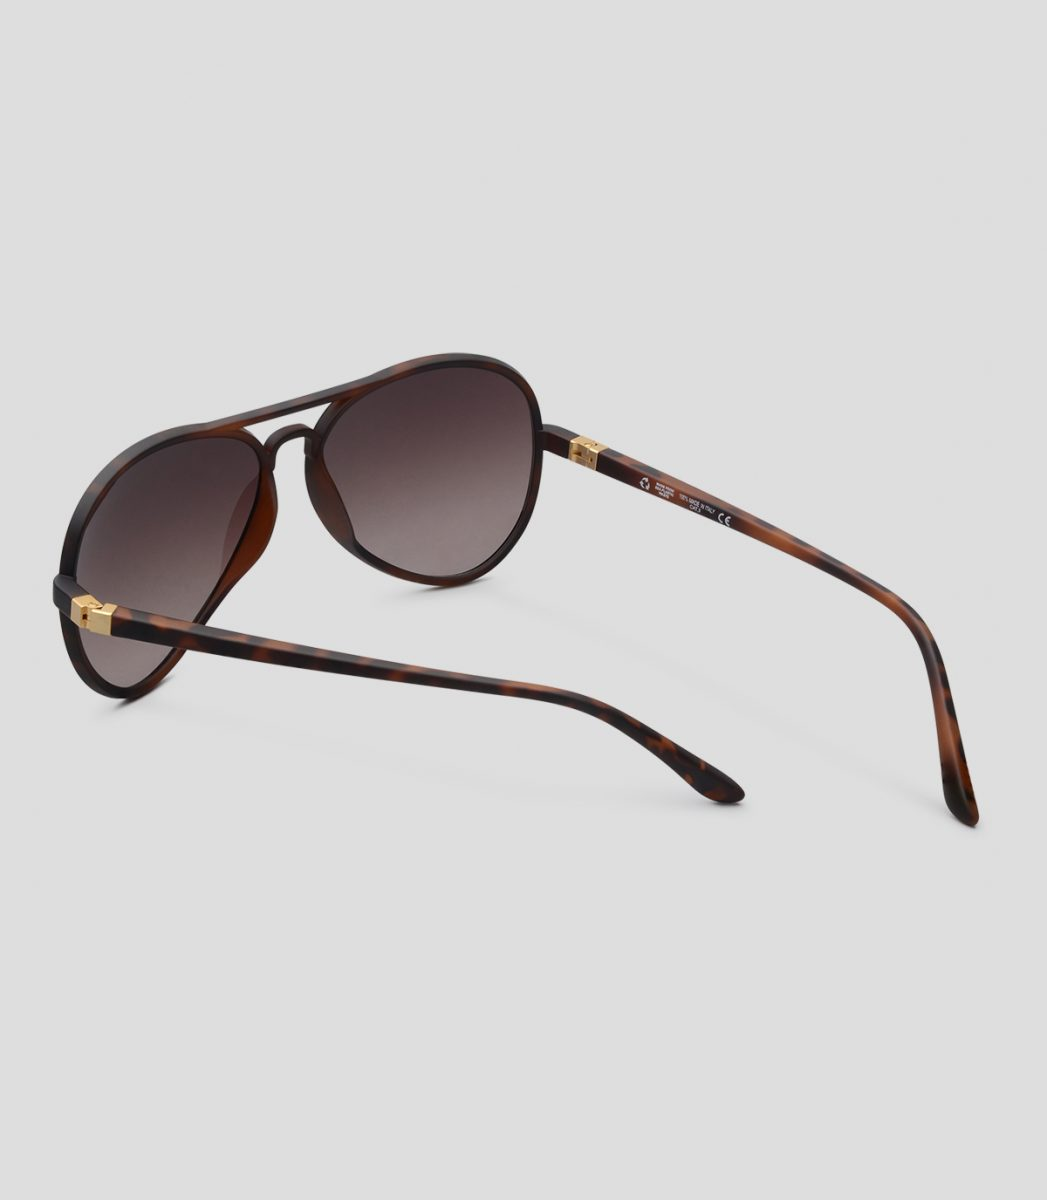 Fly 17 Havana Matt Brown frames, with fume lenses